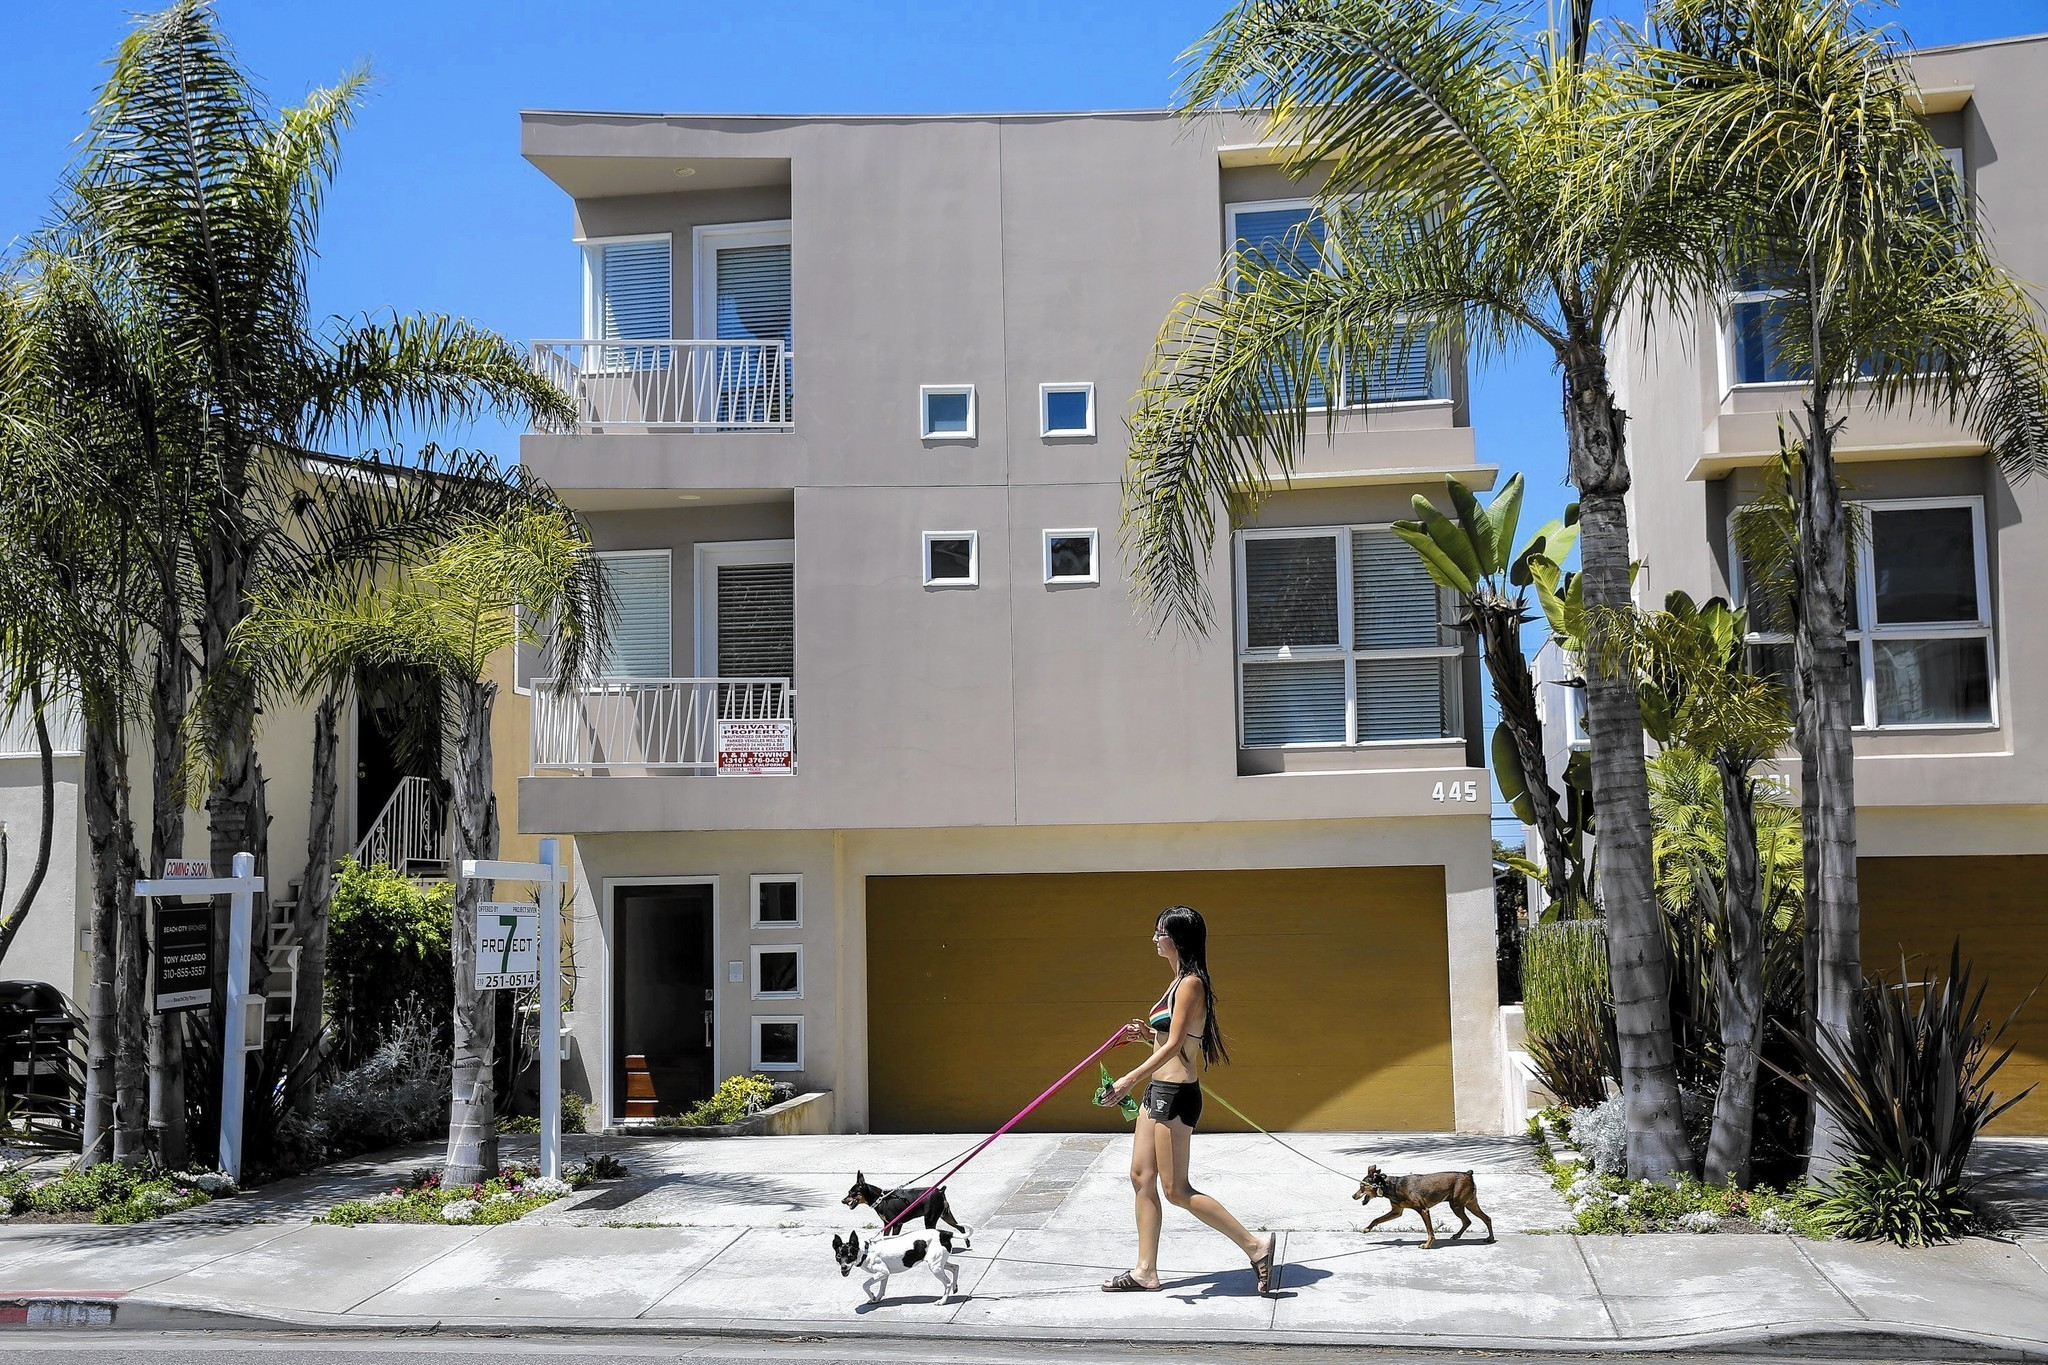 Southern California housing market is poised for a ...